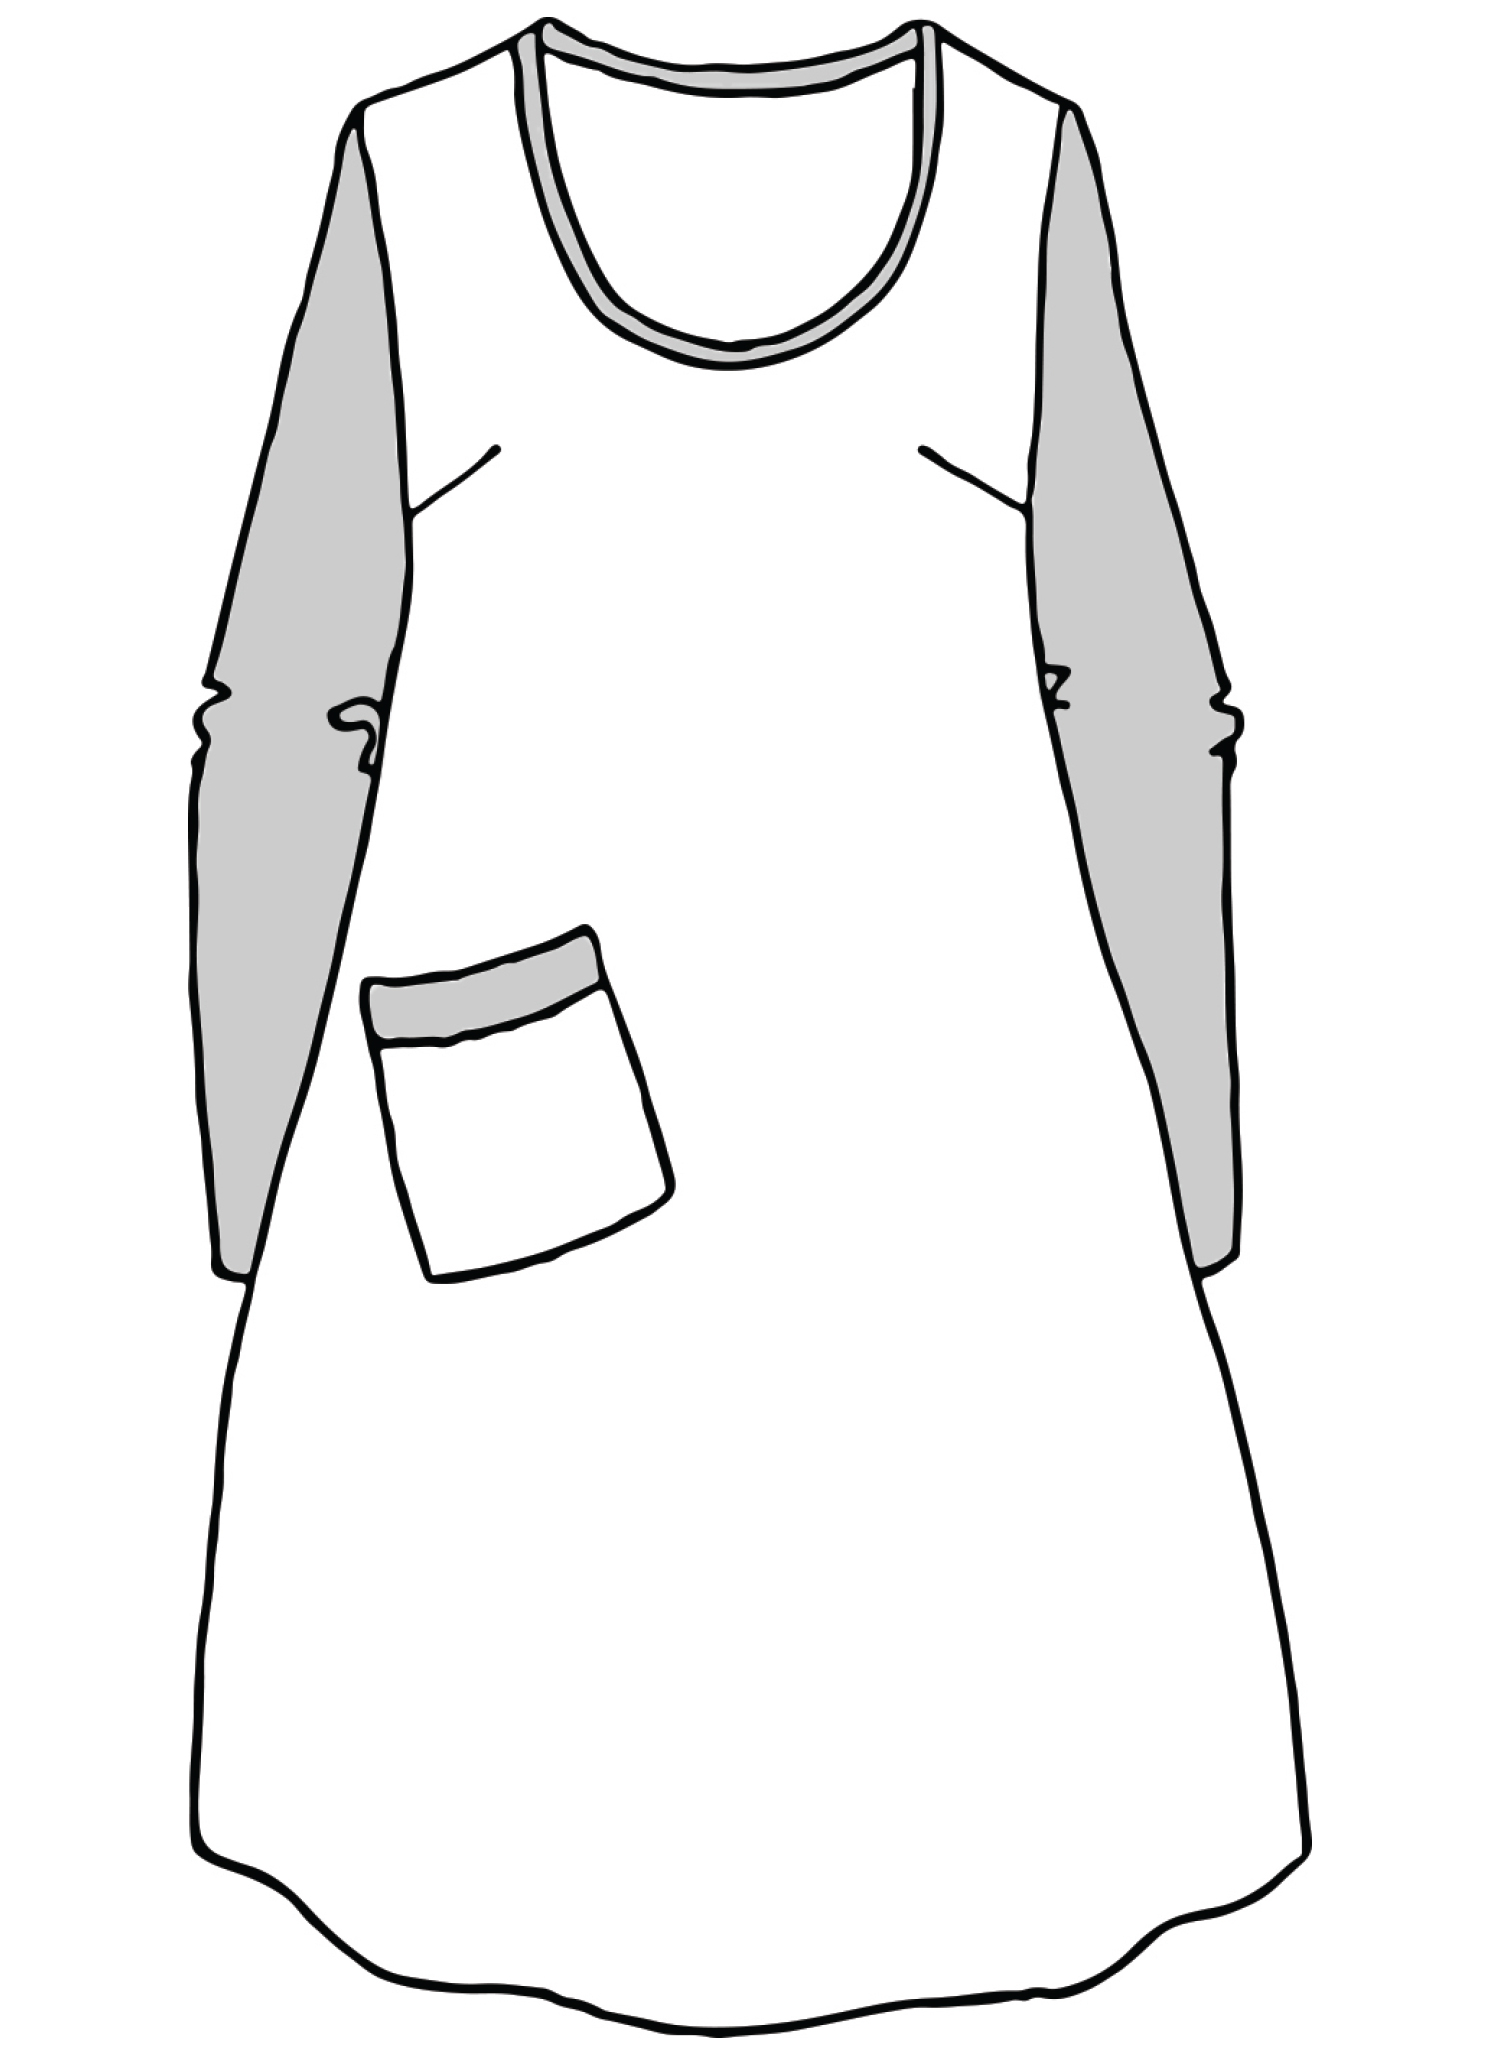 City Dress sketch image